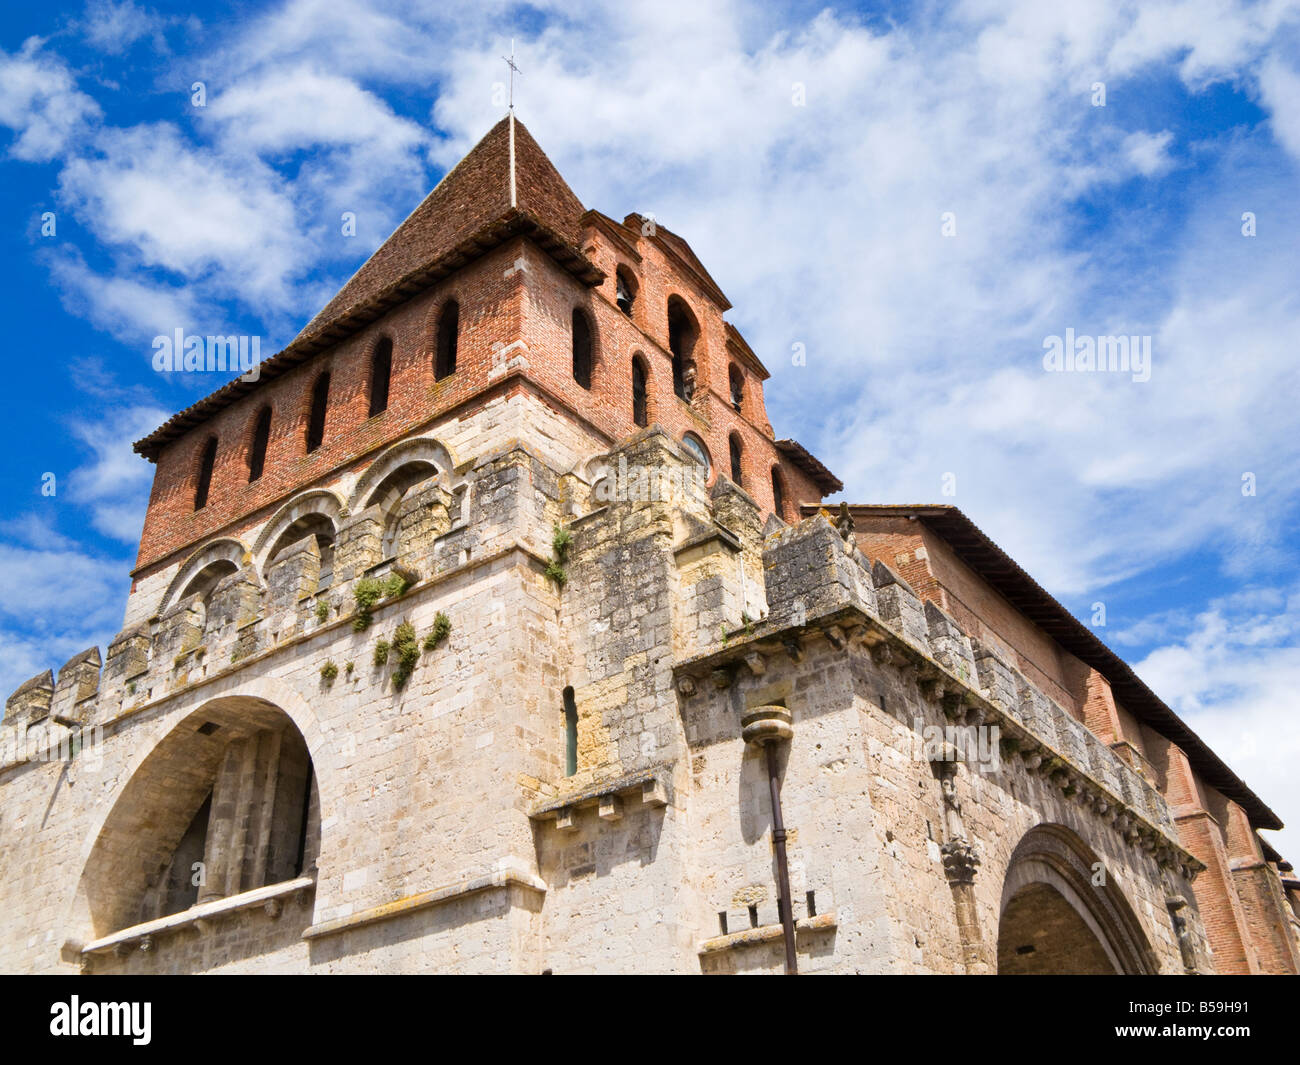 The Bell tower of the Abbaye Saint Pierre de Moissac in Moissac, Tarn et Garonne, France Europe - Stock Image